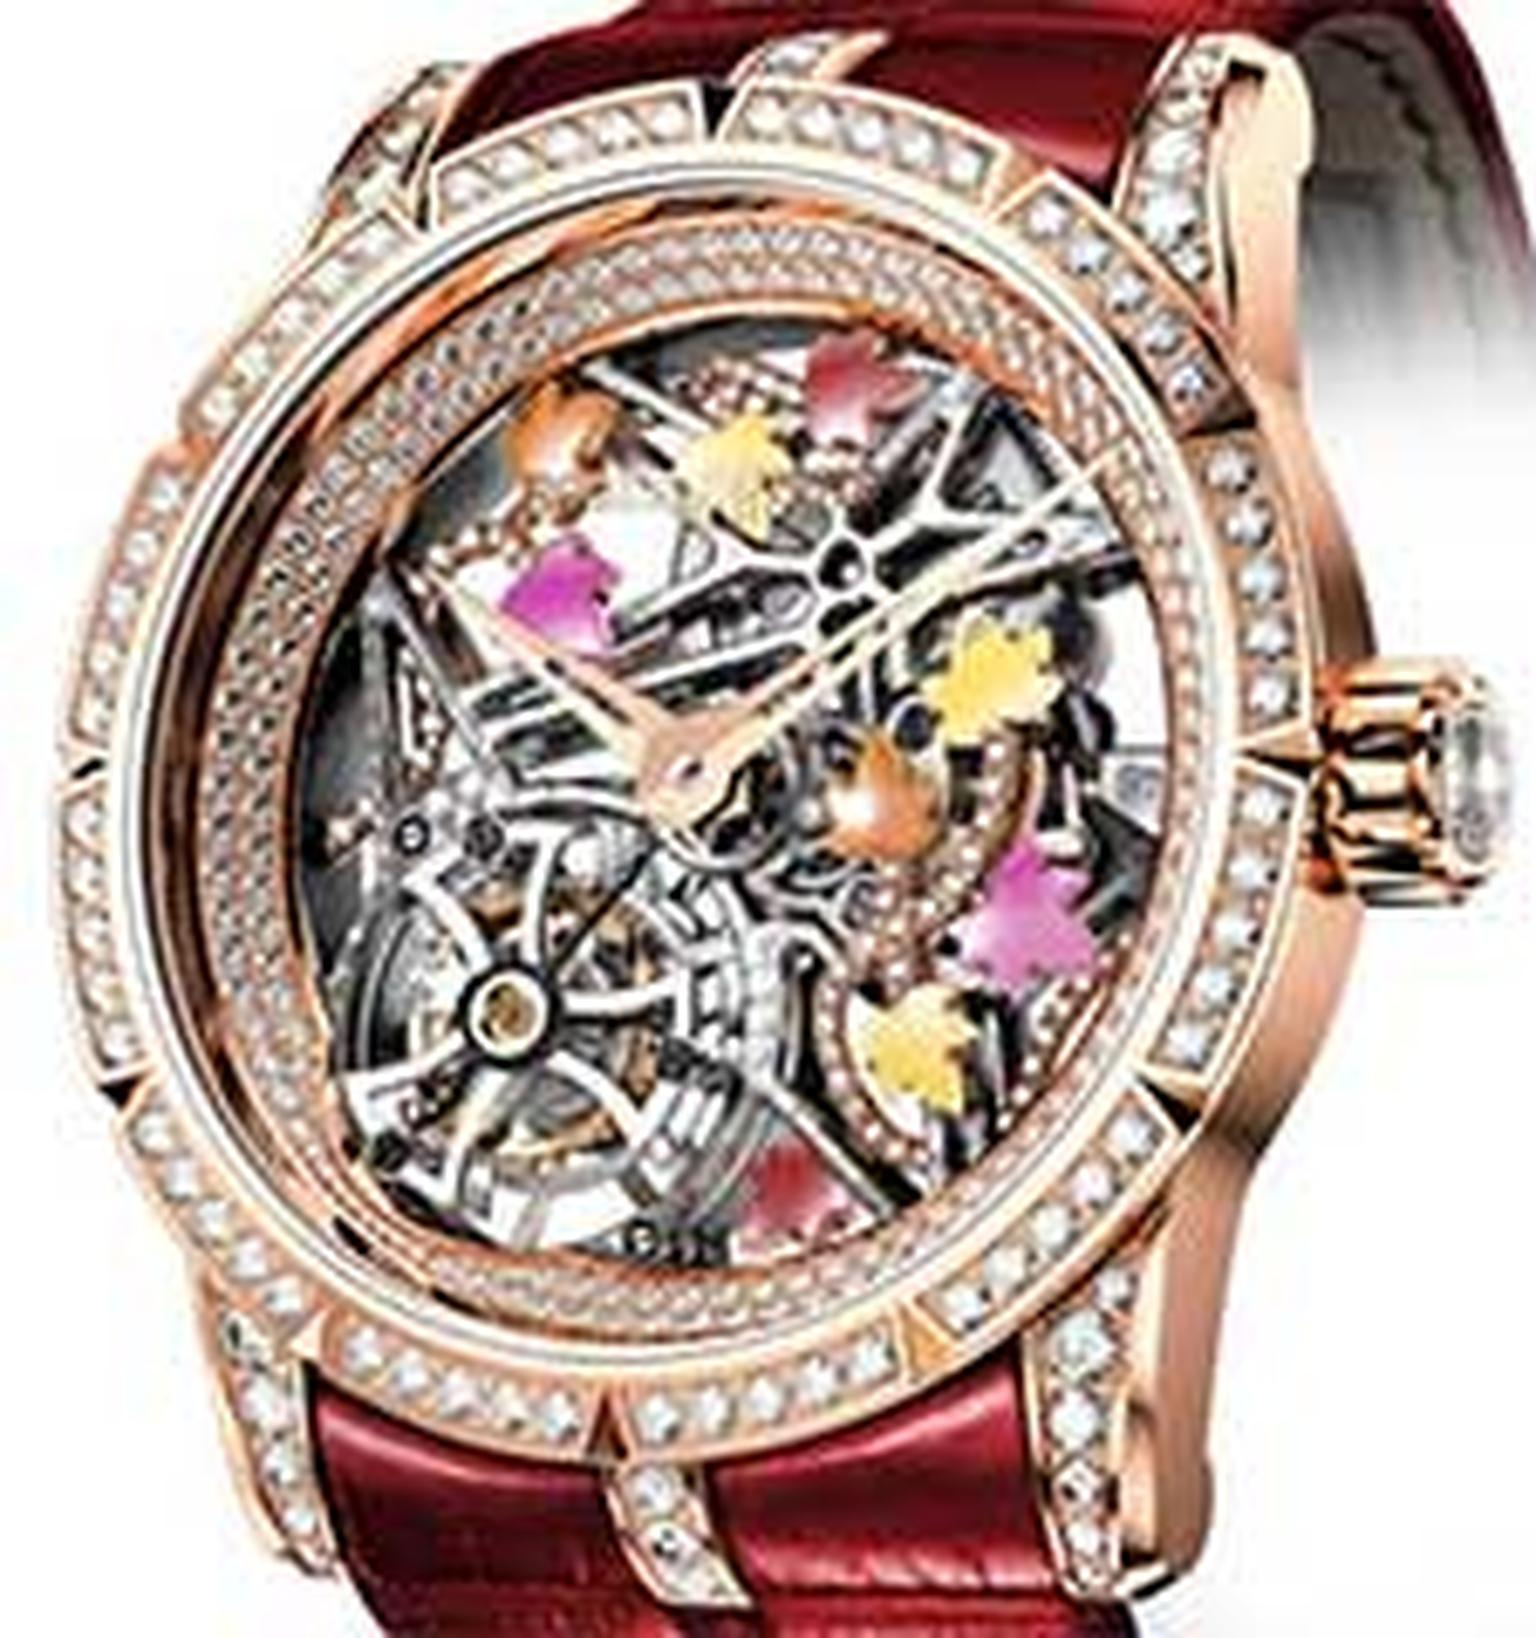 Roger Dubuis skeleton watch ladies